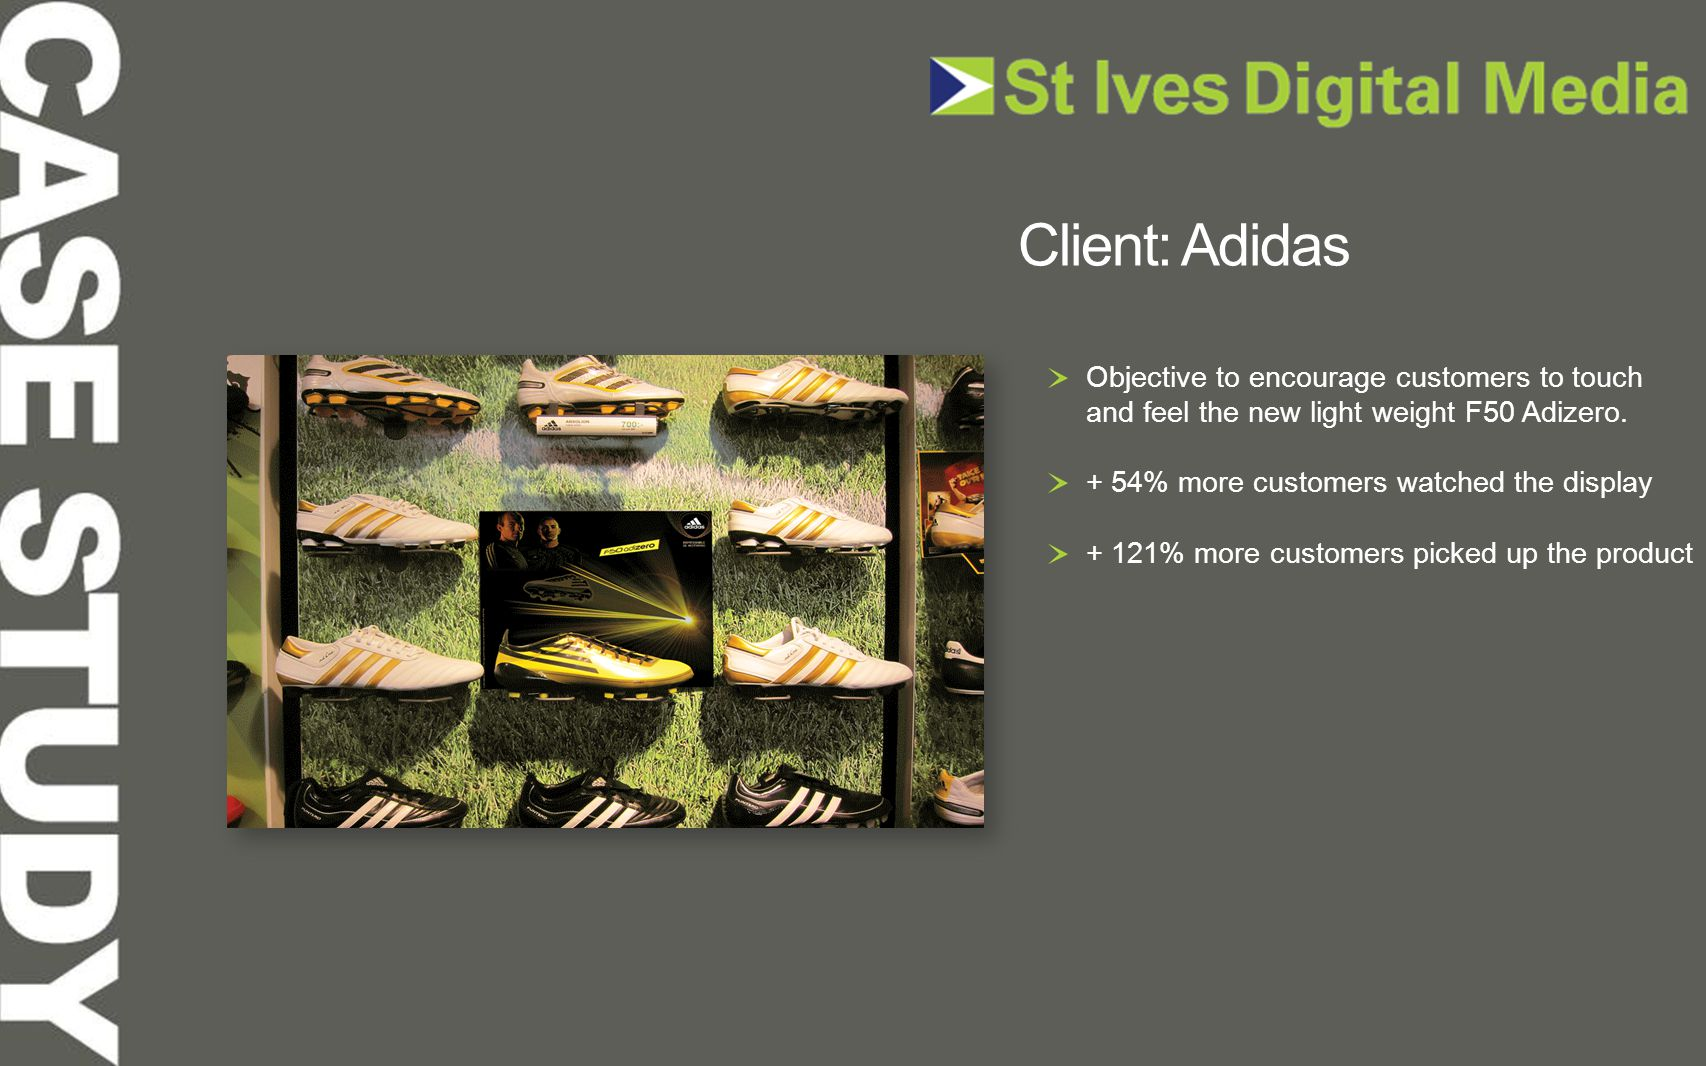 Objective to encourage customers to touch and feel the new light weight F50 Adizero. + 54% more customers watched the display + 121% more customers pi